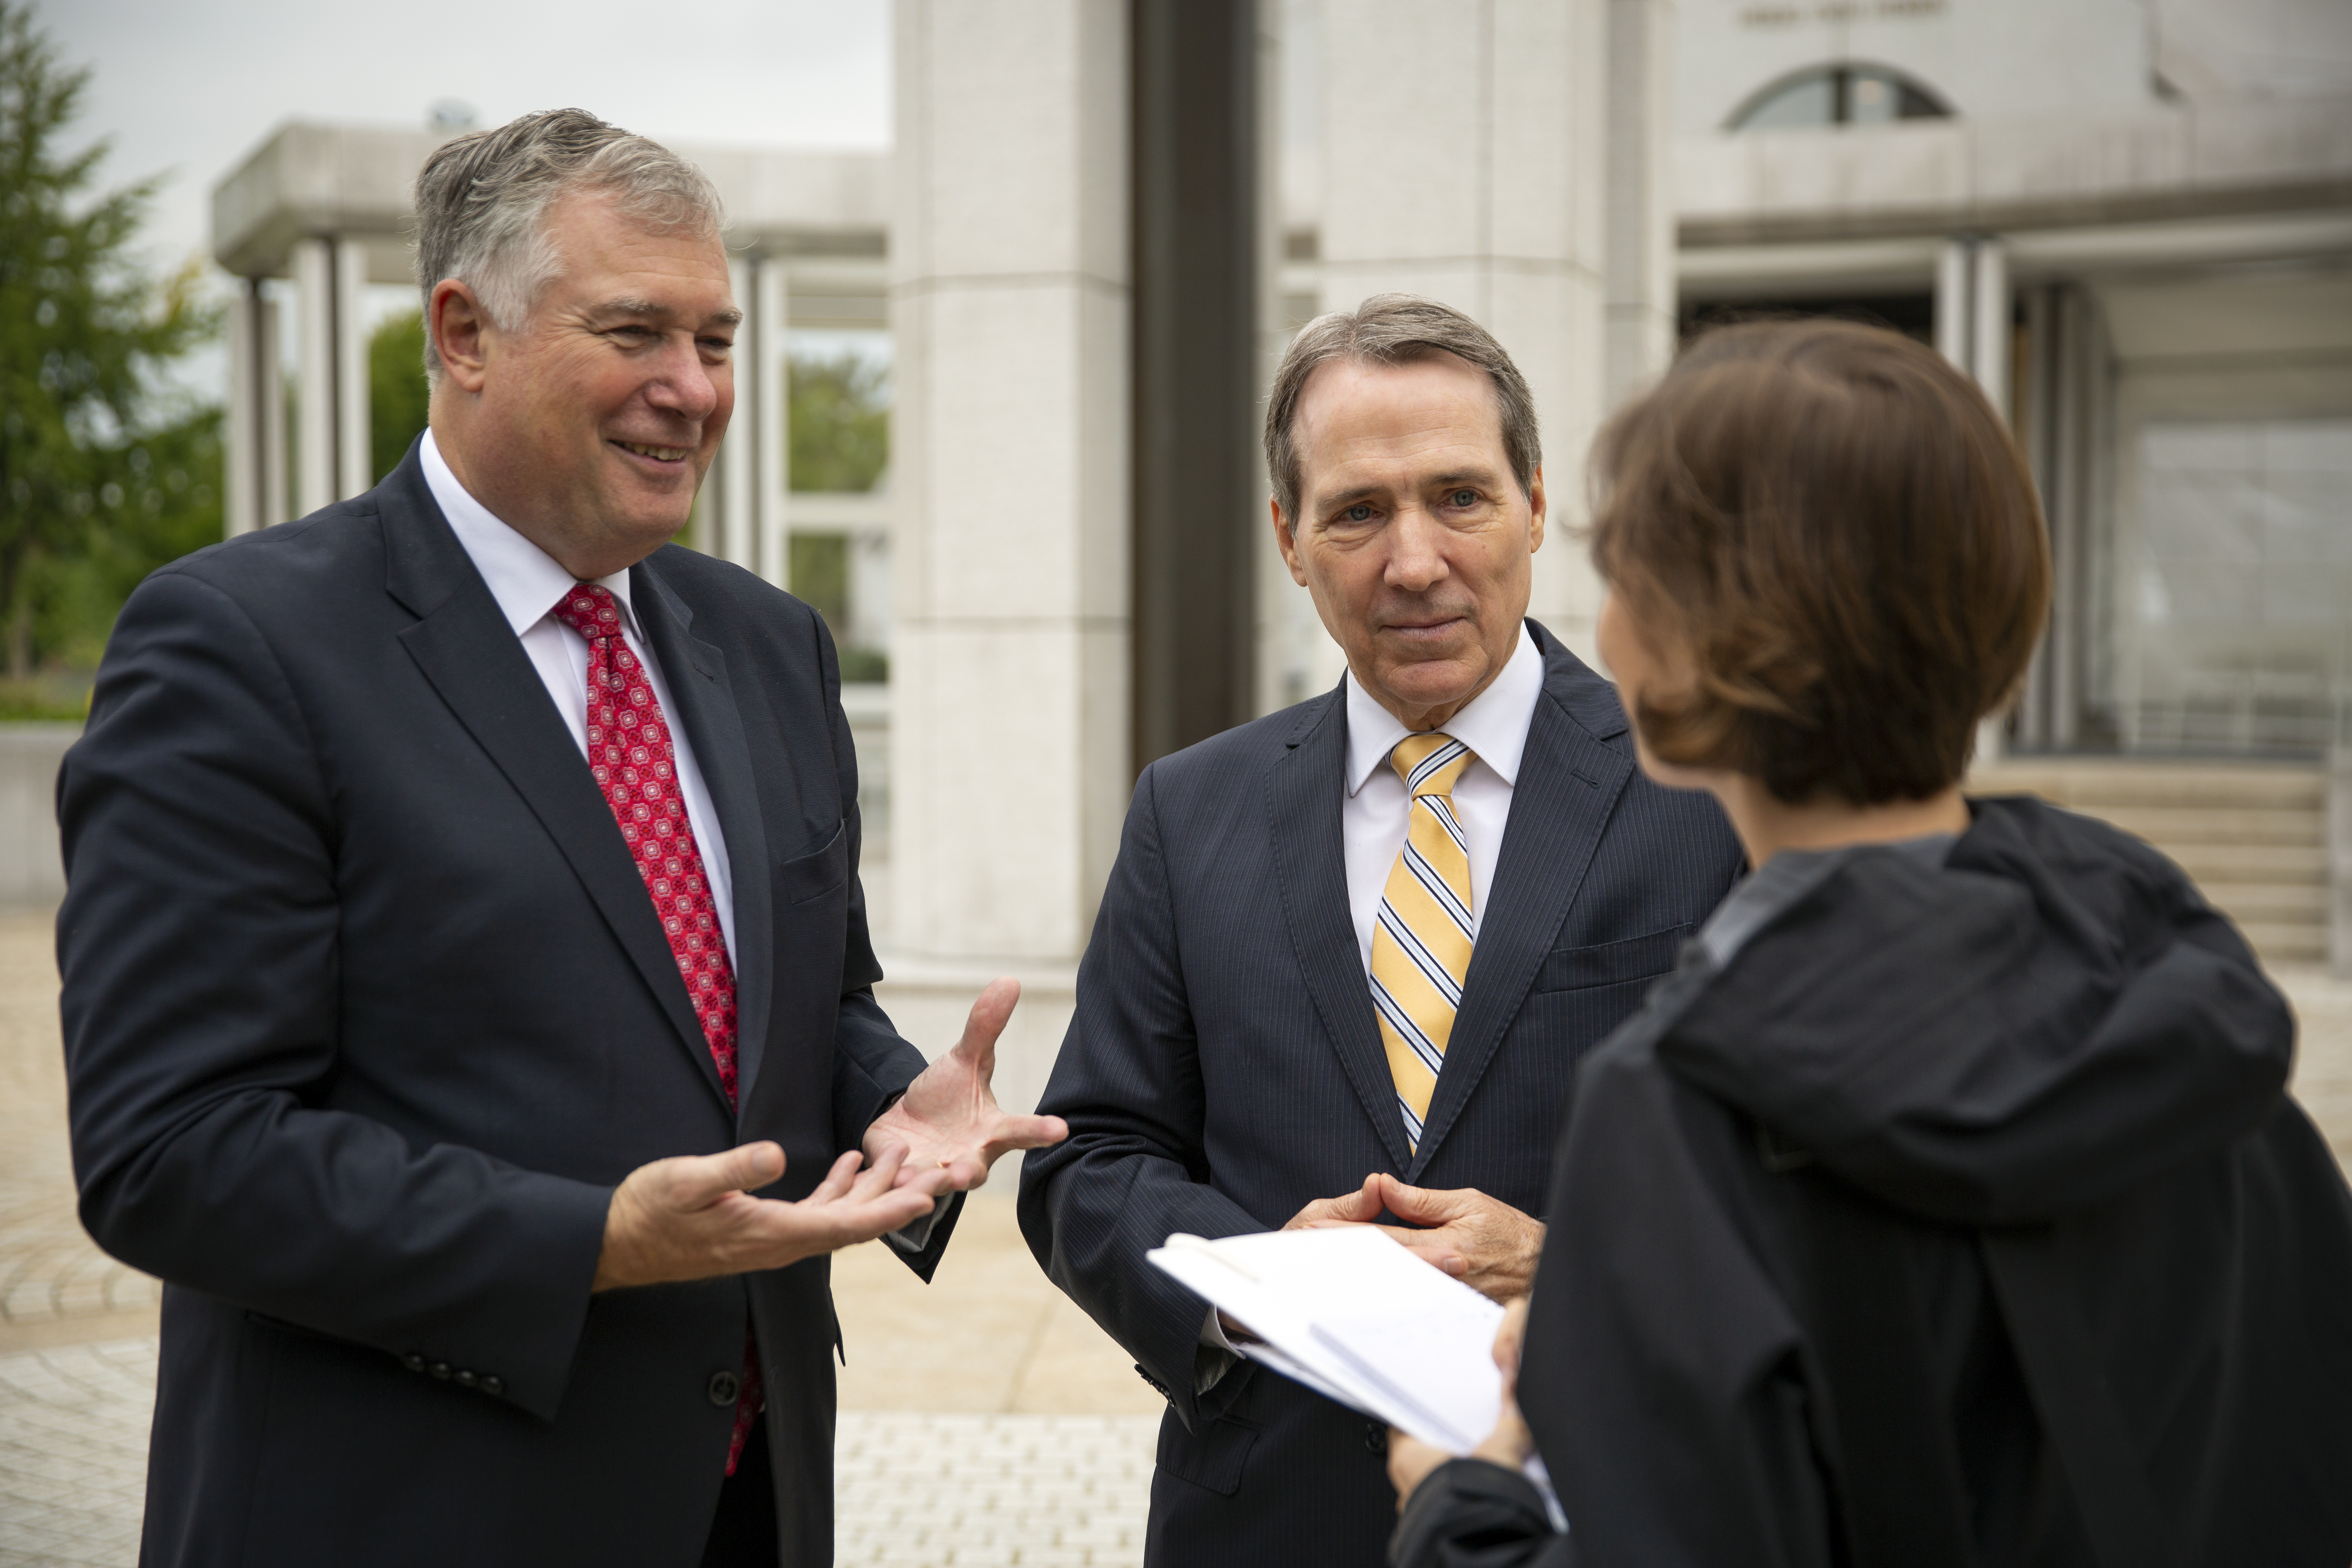 Elder Erich W. Kopischke, left, and Elder Gary B. Sabin, the Europe Area President, speak with a reporter after a press briefing on the Frankfurt Temple grounds in Friedrichsdorf, Germany, on Monday, Sept. 9, 2019.